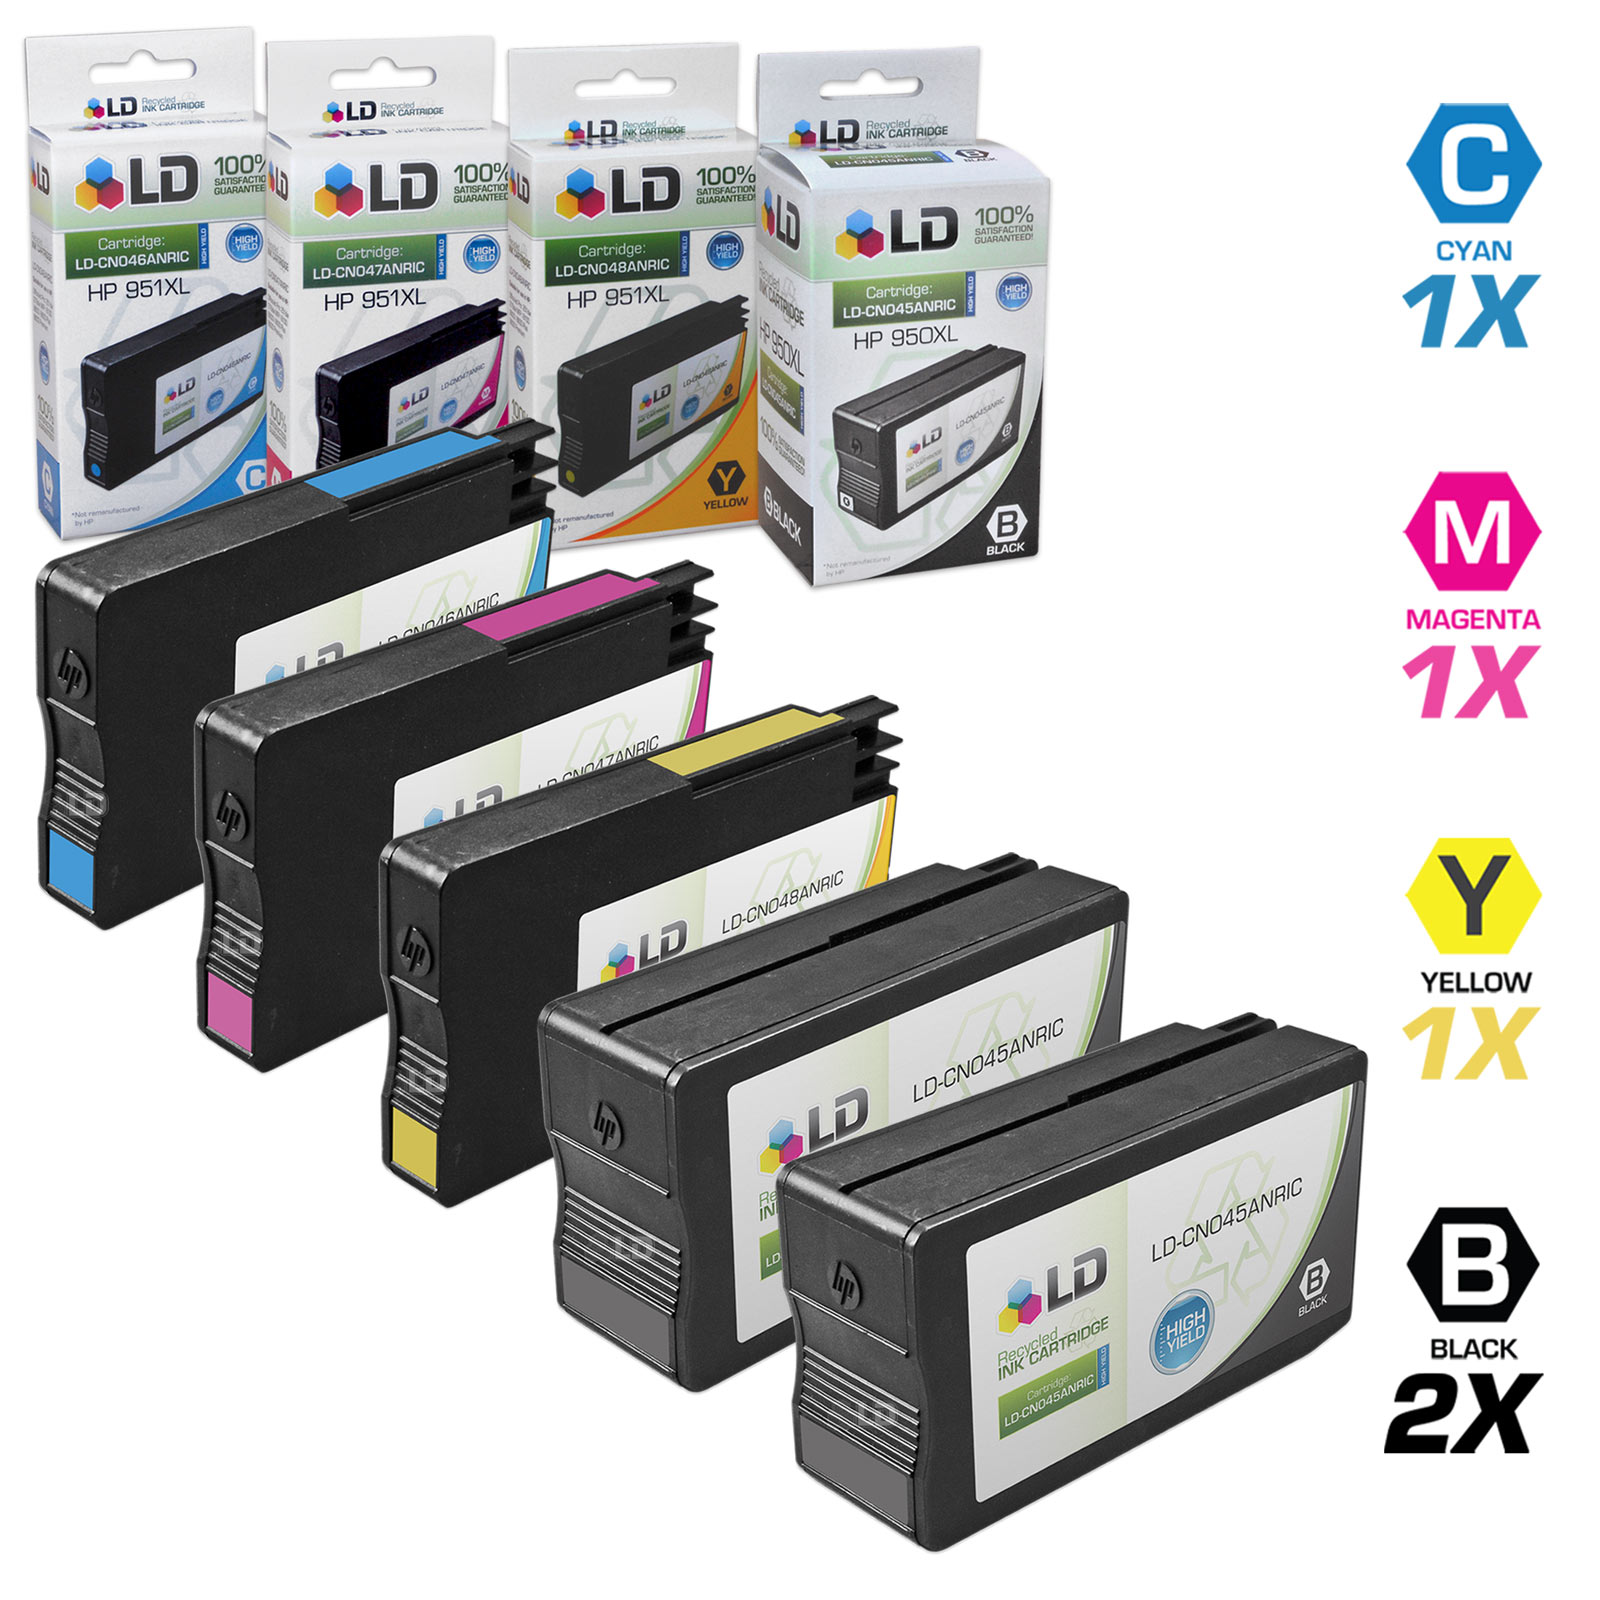 Remanufactured Replacement for HP 950 & 951 Set of 5 Cartridges Includes: 2 Black CN049AN, 1 Cyan CN049AN, 1 Magenta CN051AN, and 1 Yellow CN052AN